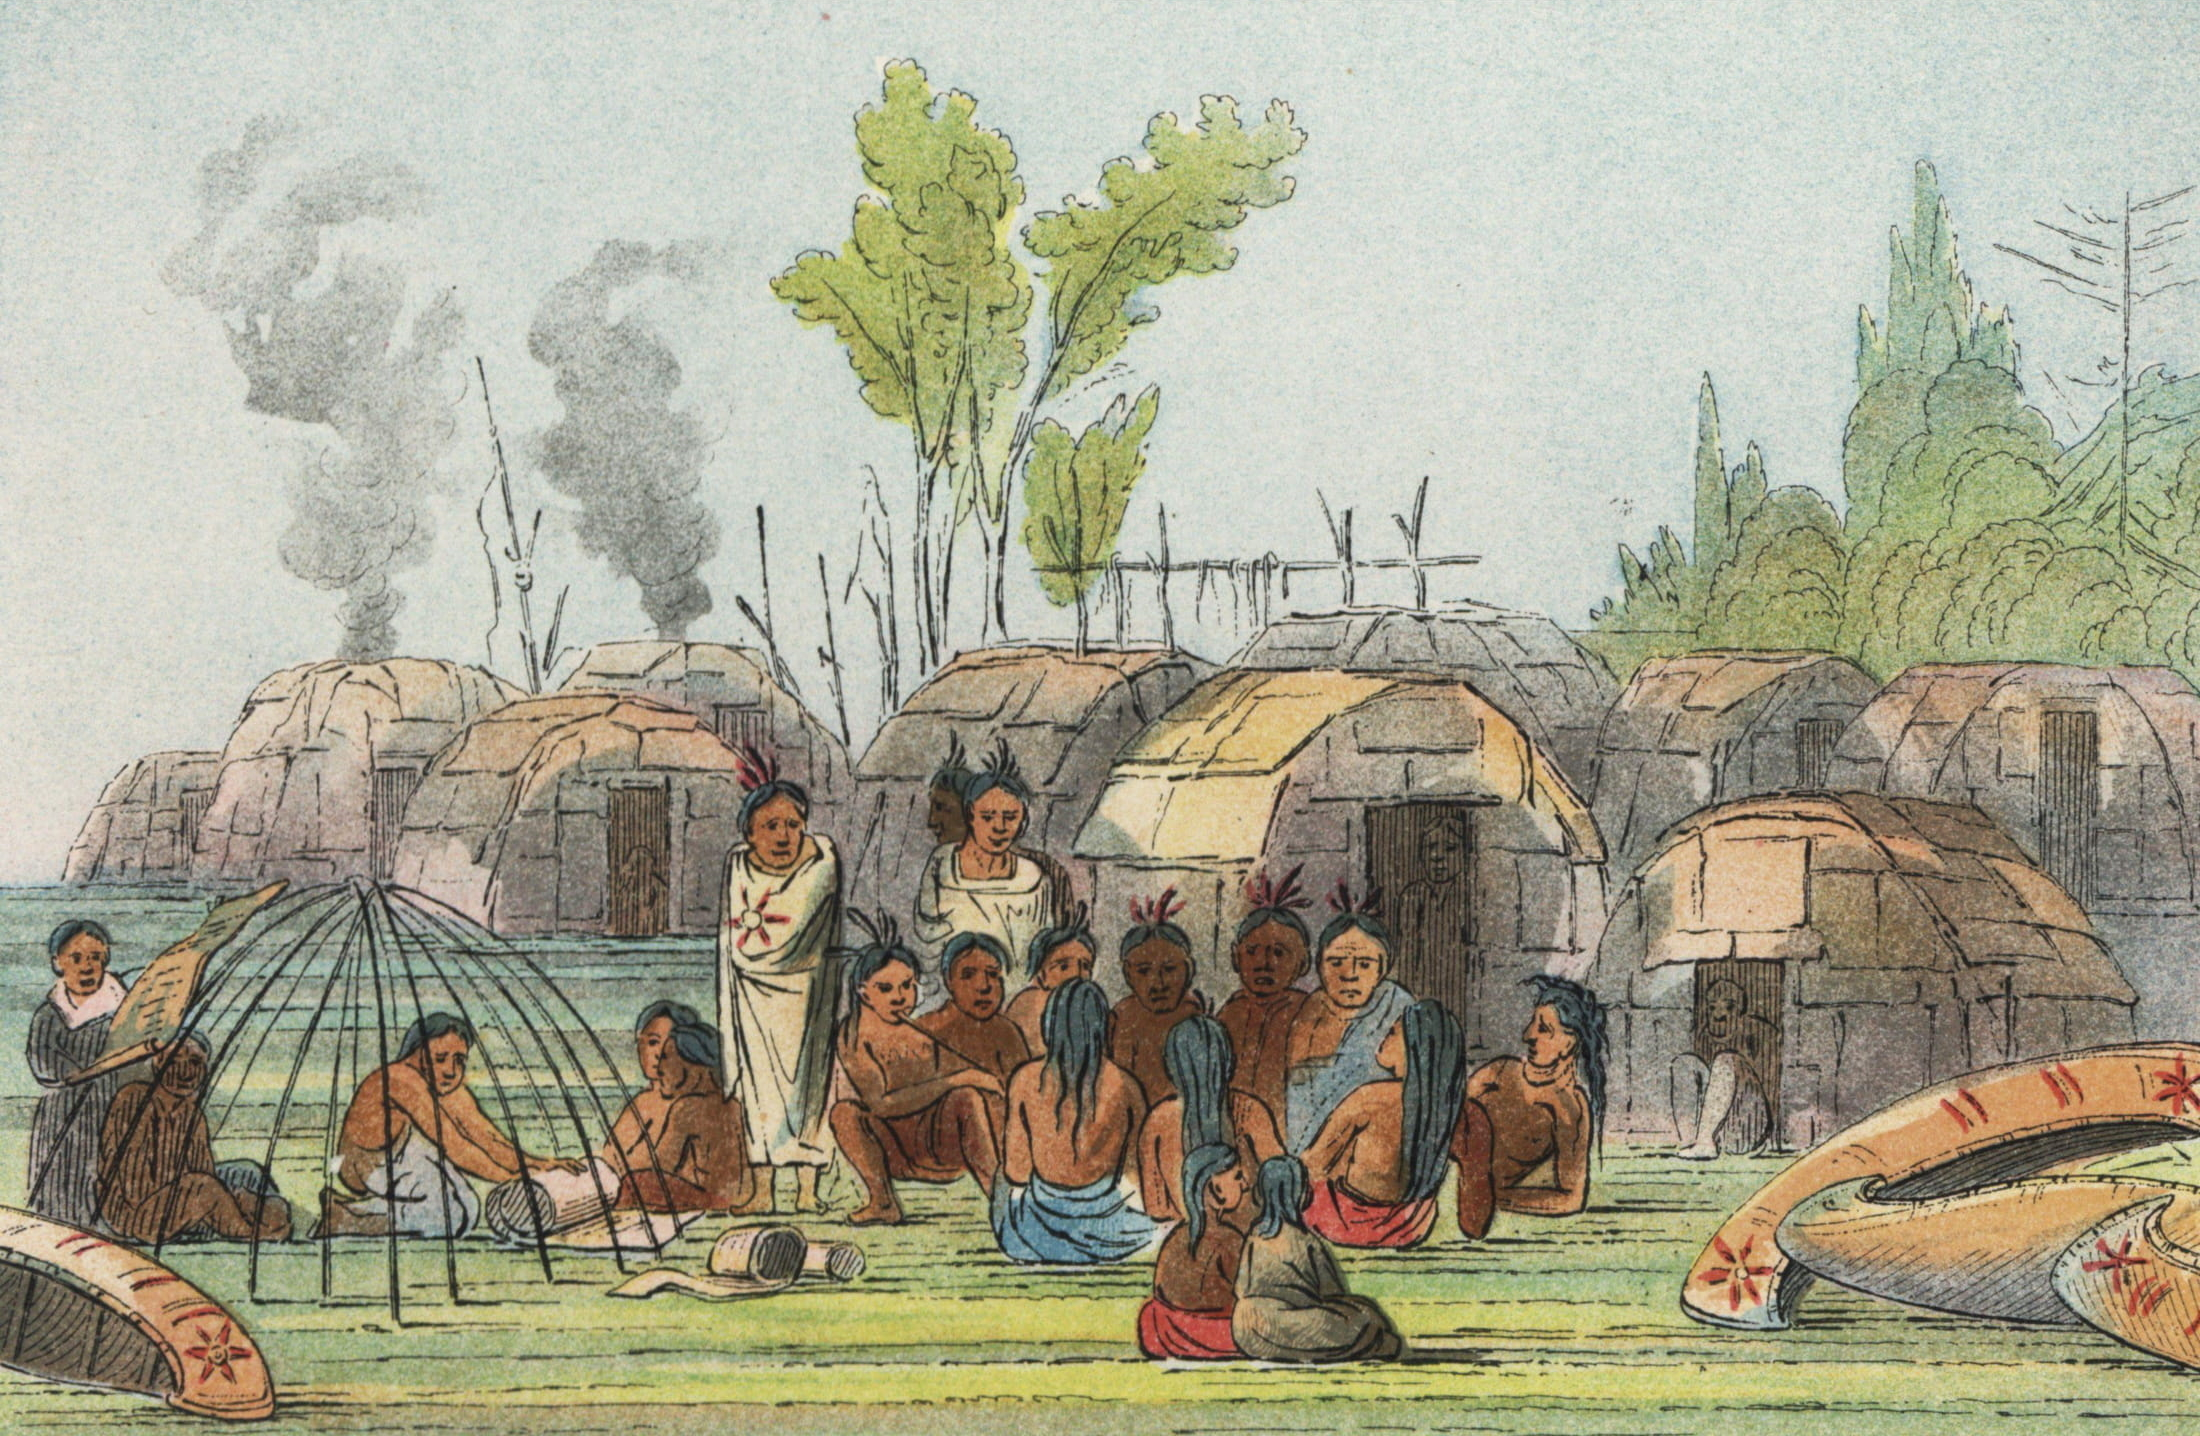 Bark Lodge Village. Image is in the Public Domain.